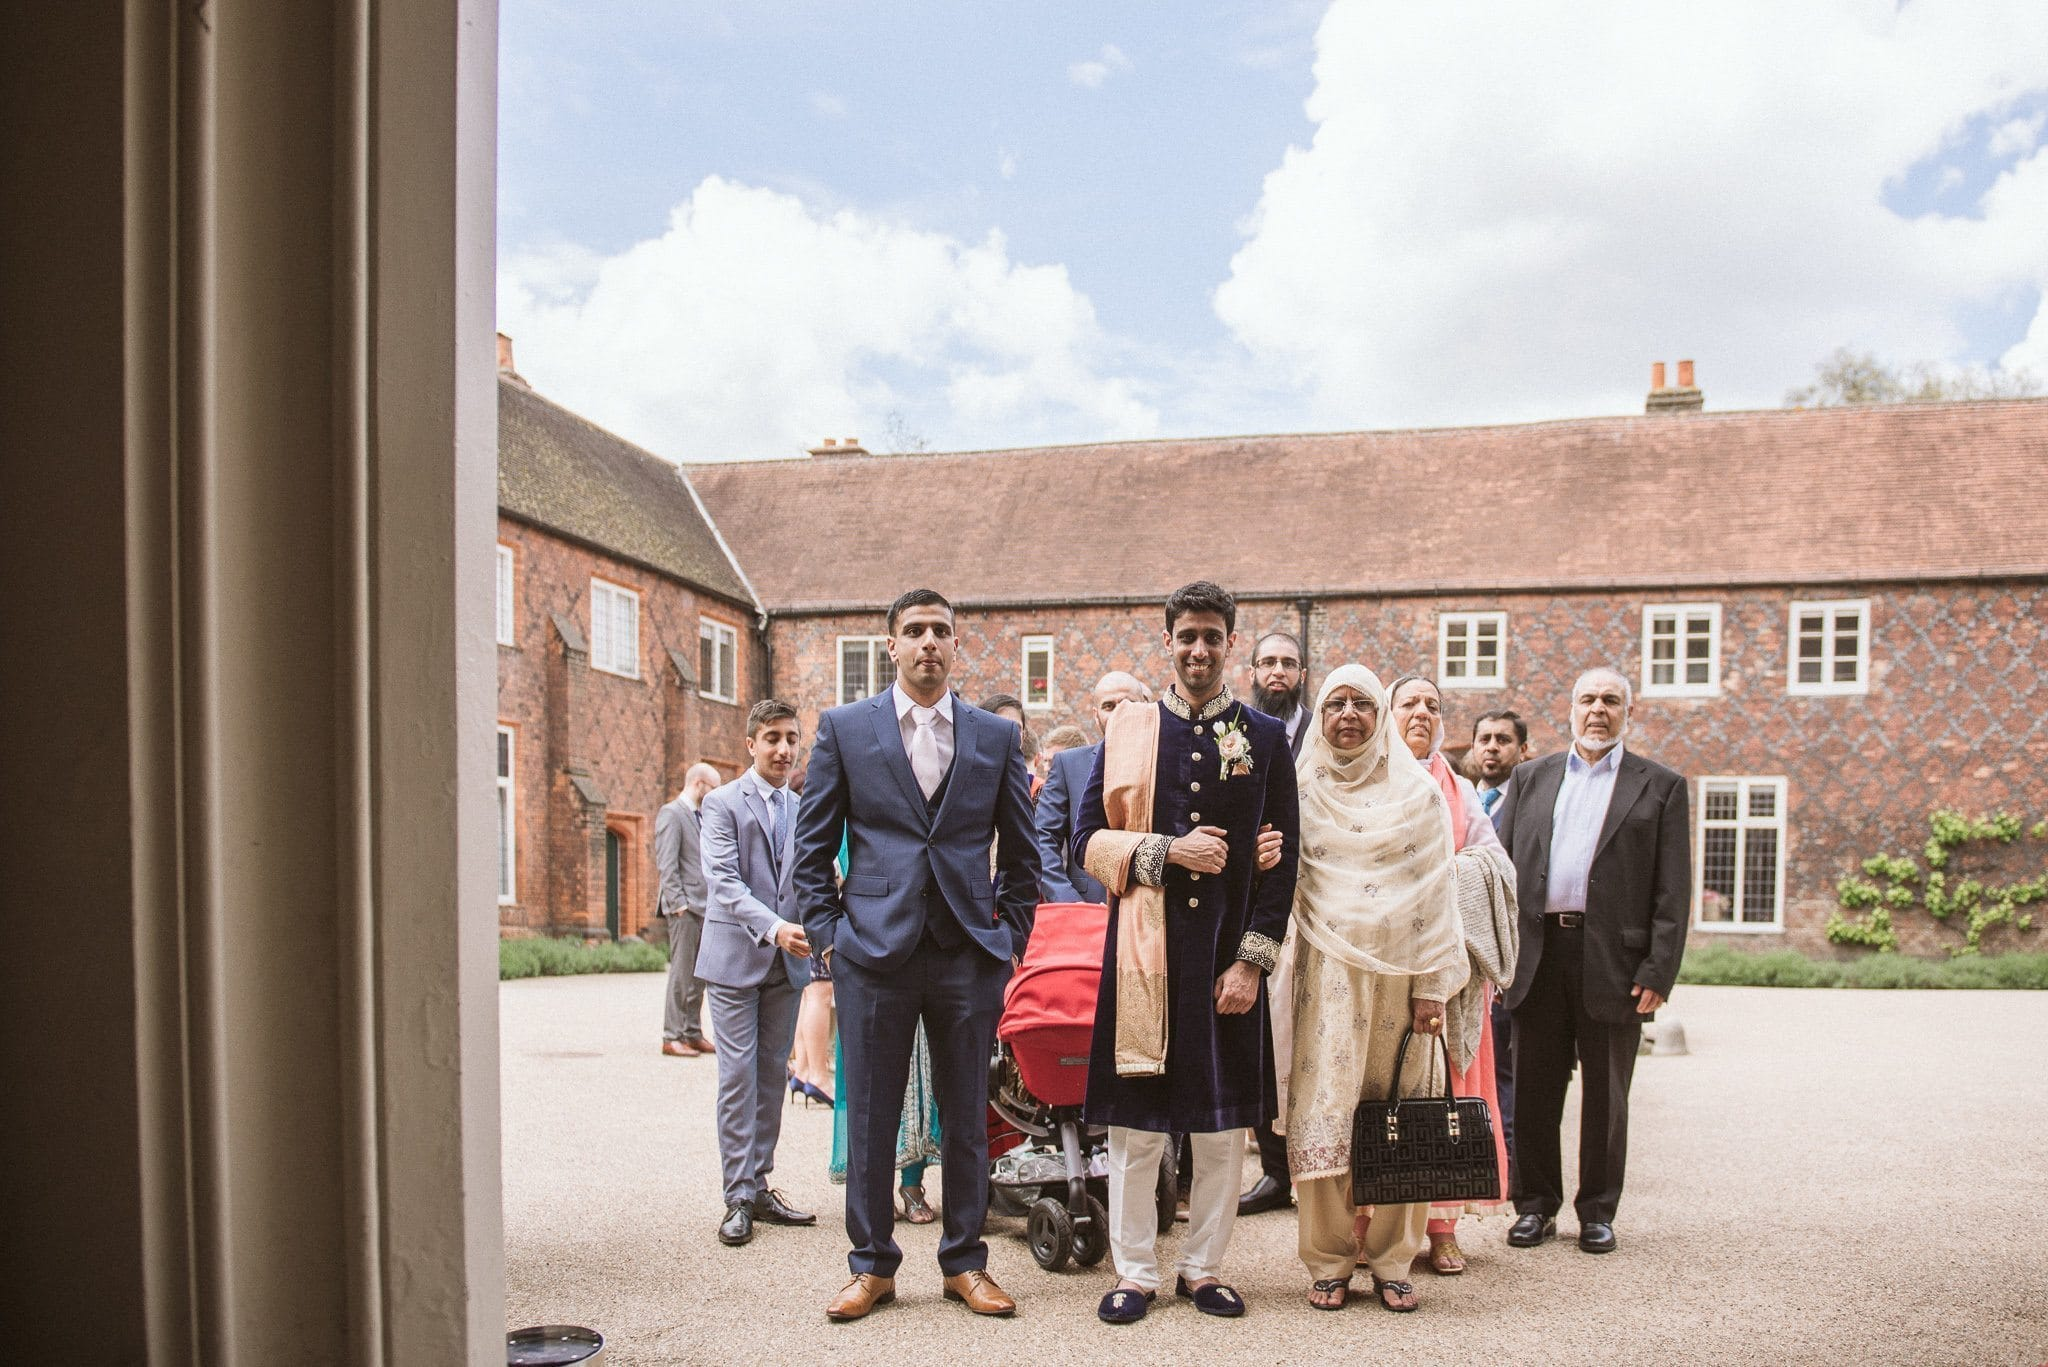 Usman and his family arrive on foot at Fulham Palace for his wedding ceremony